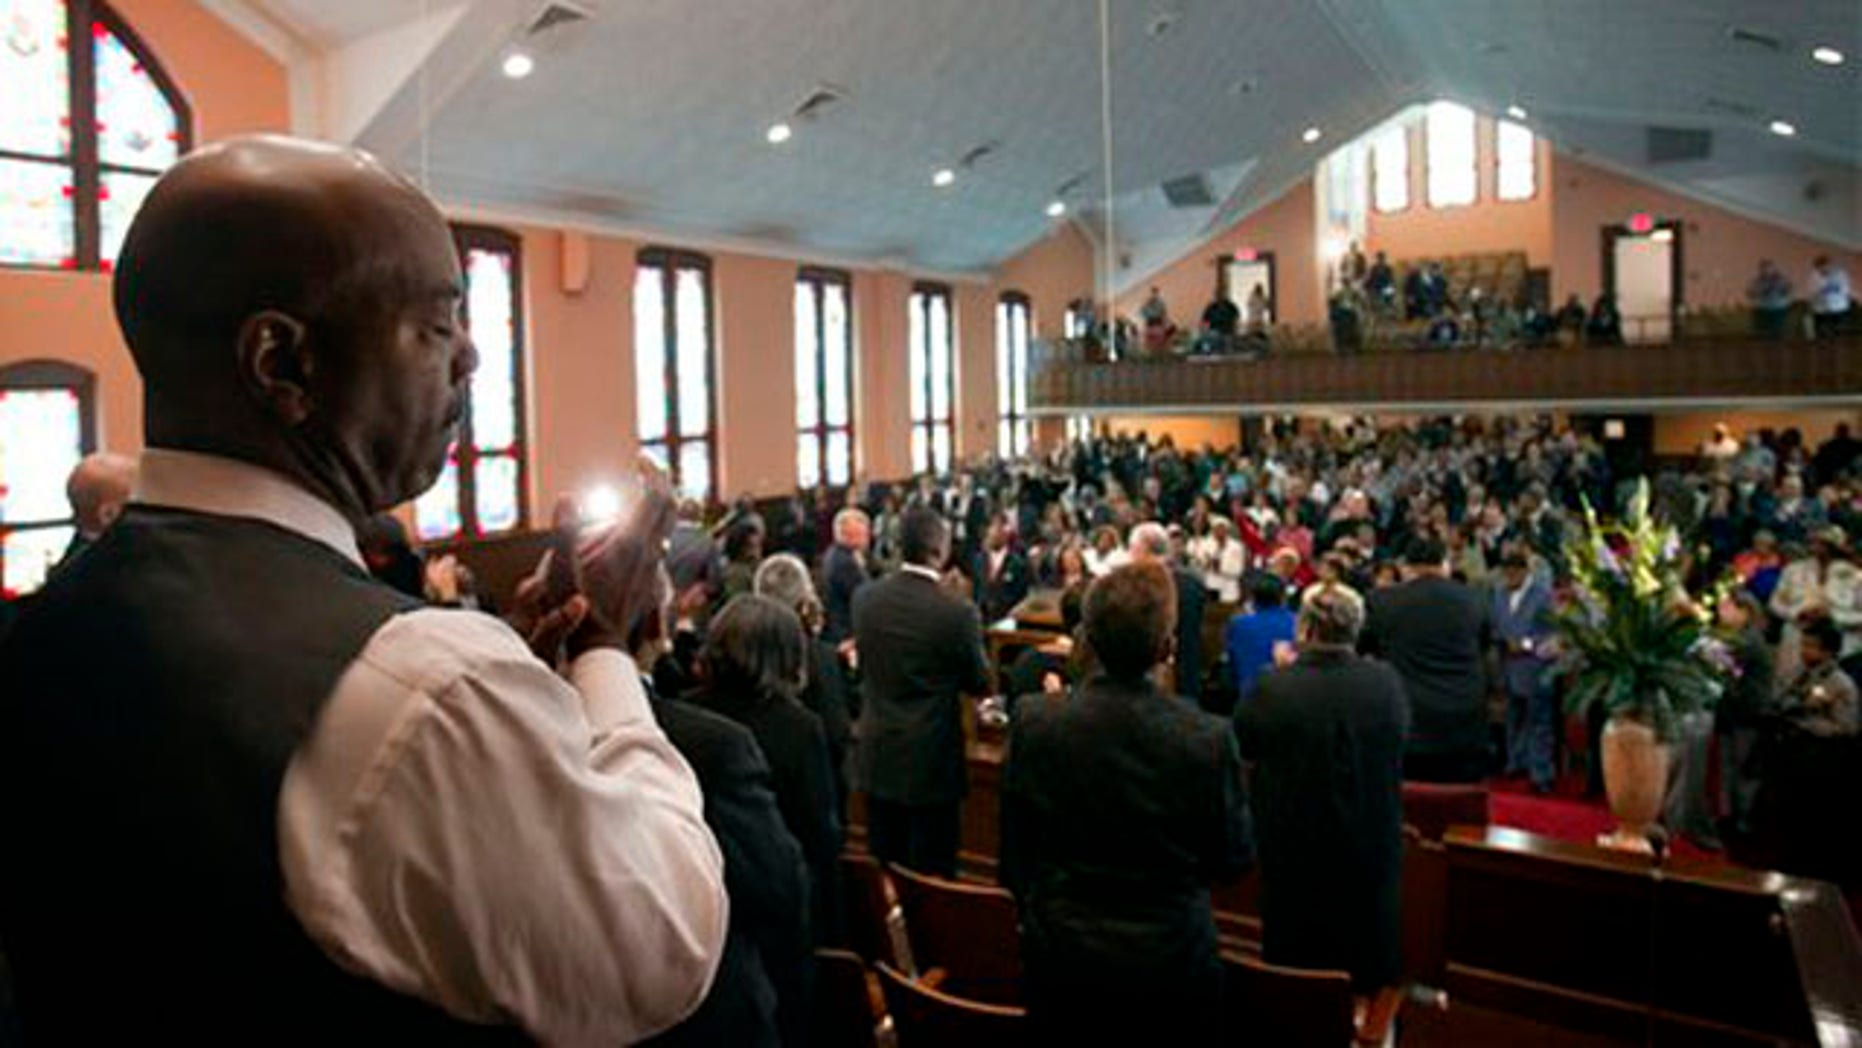 Choir member Kevin Sykes, left, applauds during a ceremony to mark the restoration of the sanctuary of the historic Ebenezer Baptist Church where Dr. Martin Luther King Jr. preached Friday, April 15, 2011 in Atlanta. (AP Photo/David Goldman)